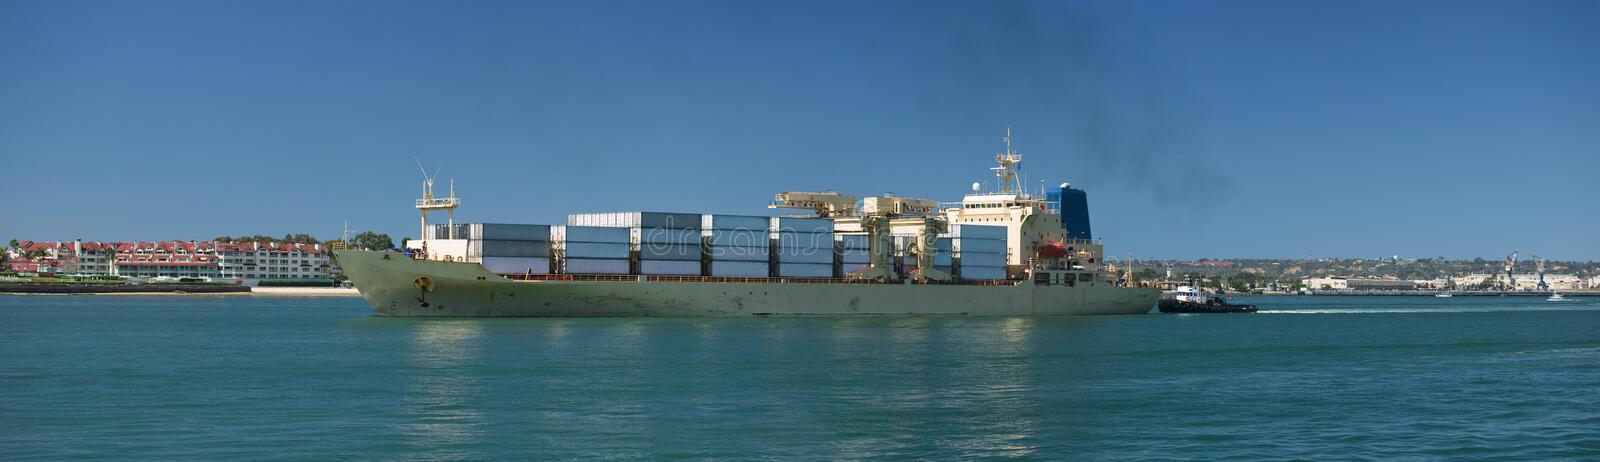 Download Cargo Container Ship stock photo. Image of harbor, color - 6511102